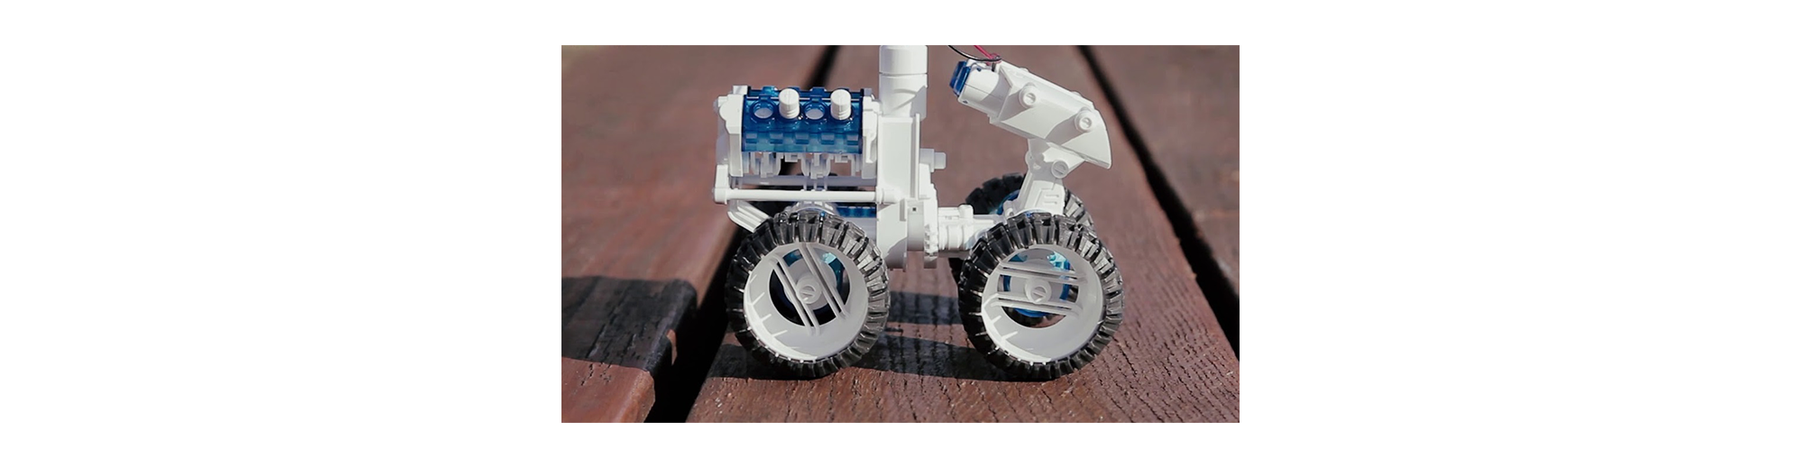 STEM TOY - OWI-752 Salt Water Monster Truck